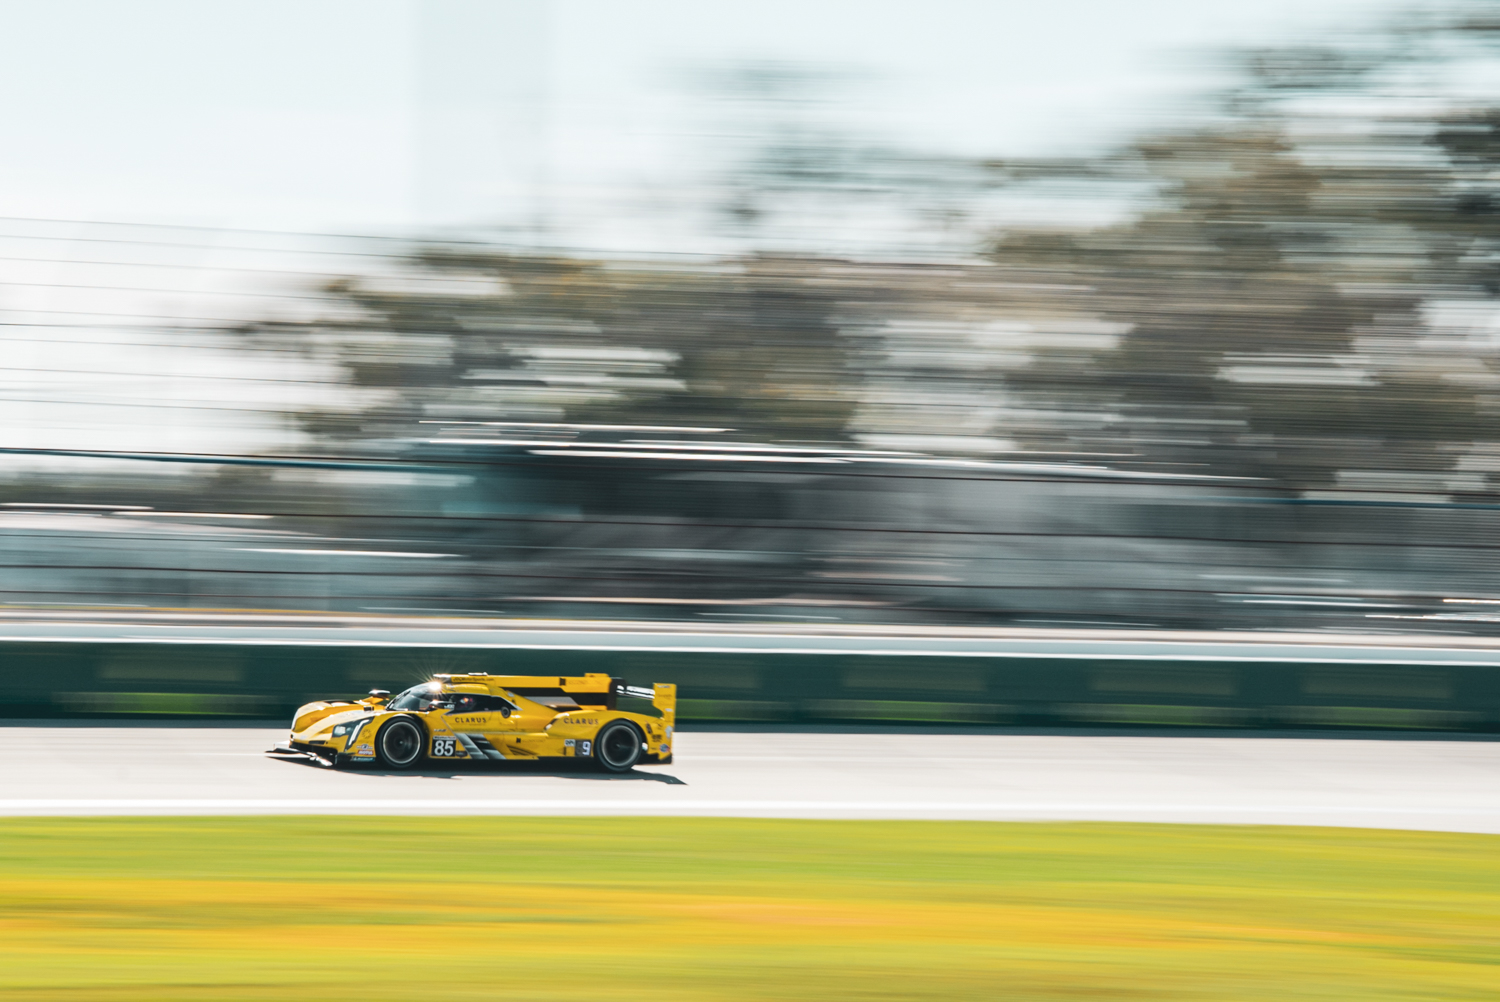 A Cadillac DPi soaks in the last bit of sun on the Friday before a stormy weekend.